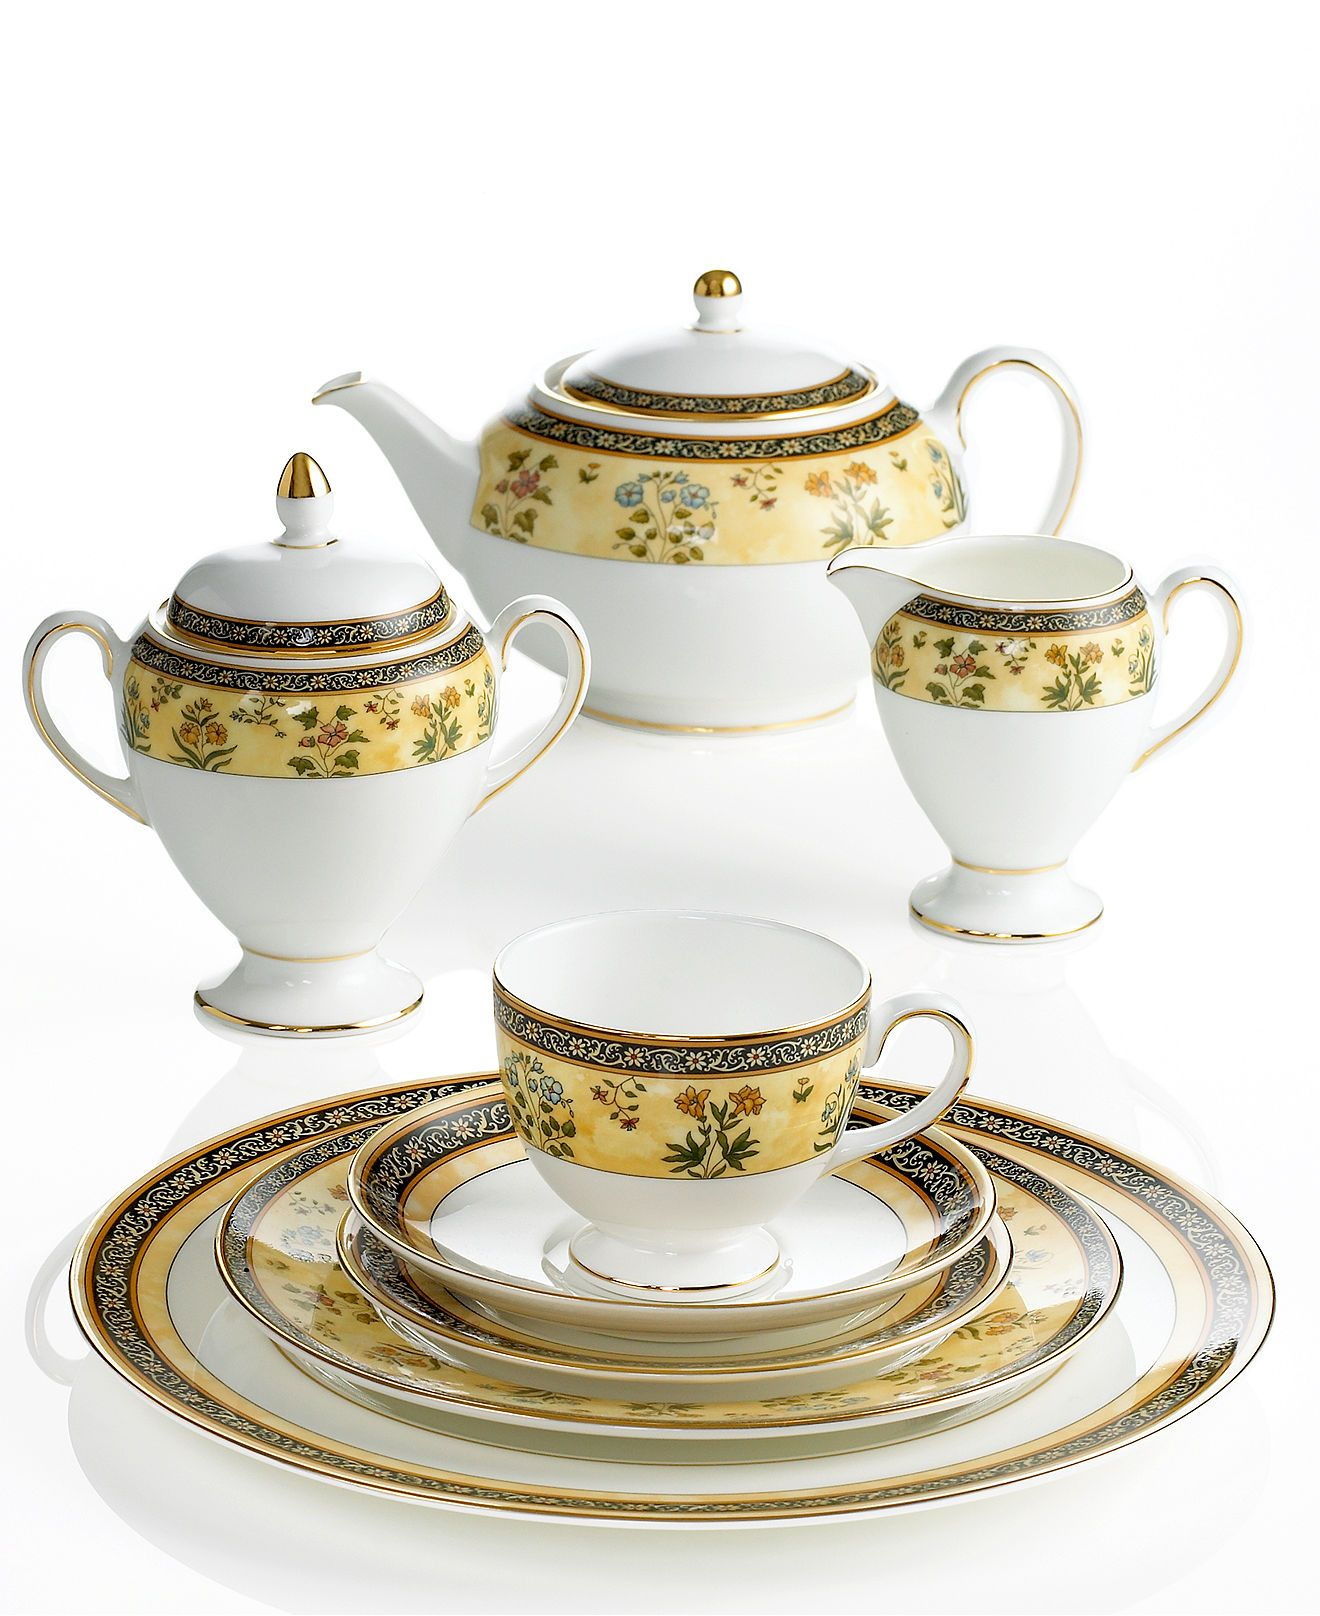 Wedgwood India Collection - Fine China - Macy\u0027s  sc 1 st  Pinterest & Wedgwood India Collection | Wedgwood China and India